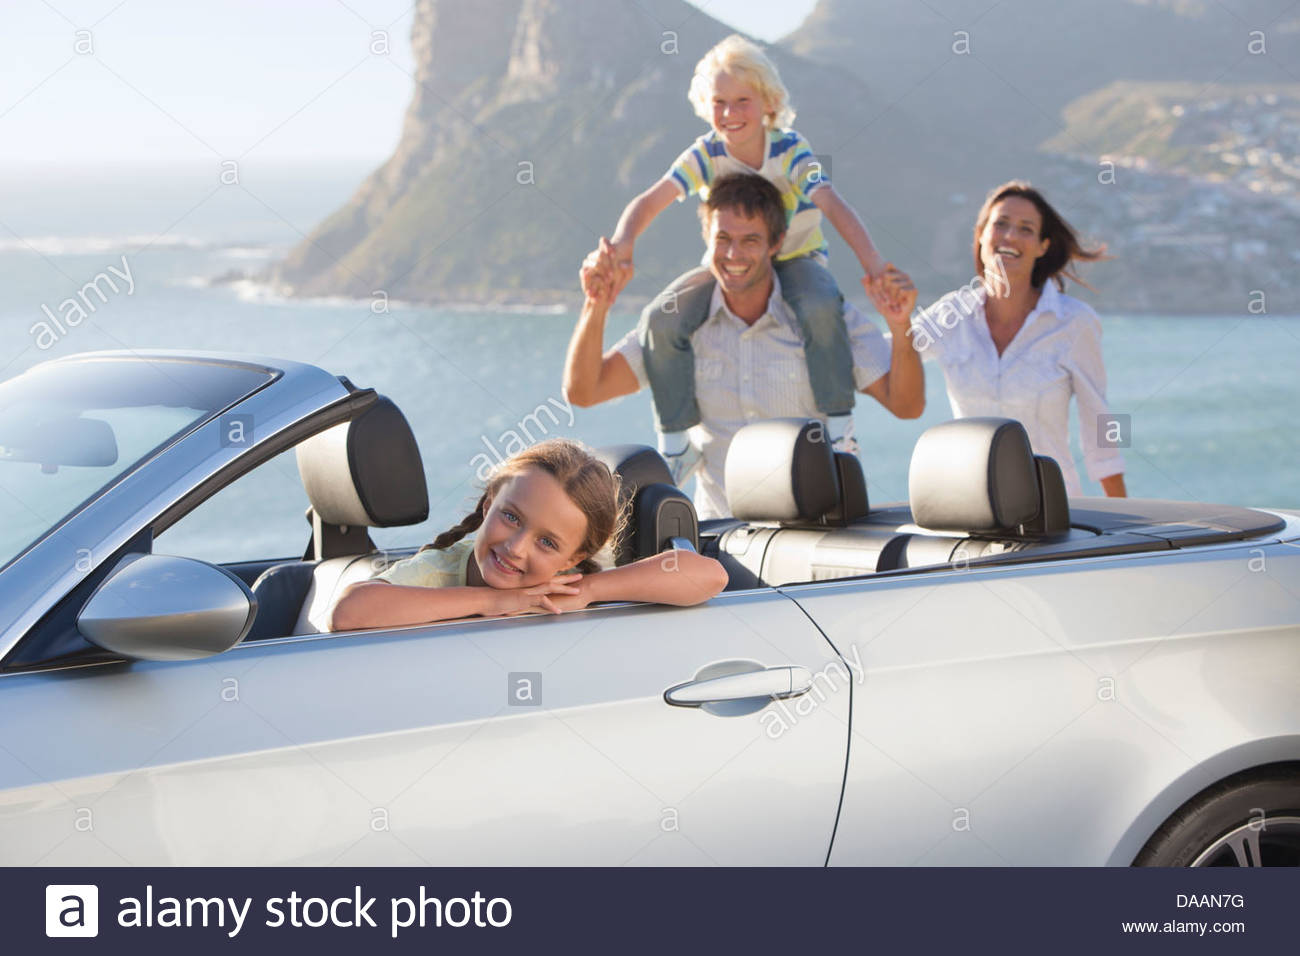 Portrait of happy family with convertible near ocean - Stock Image